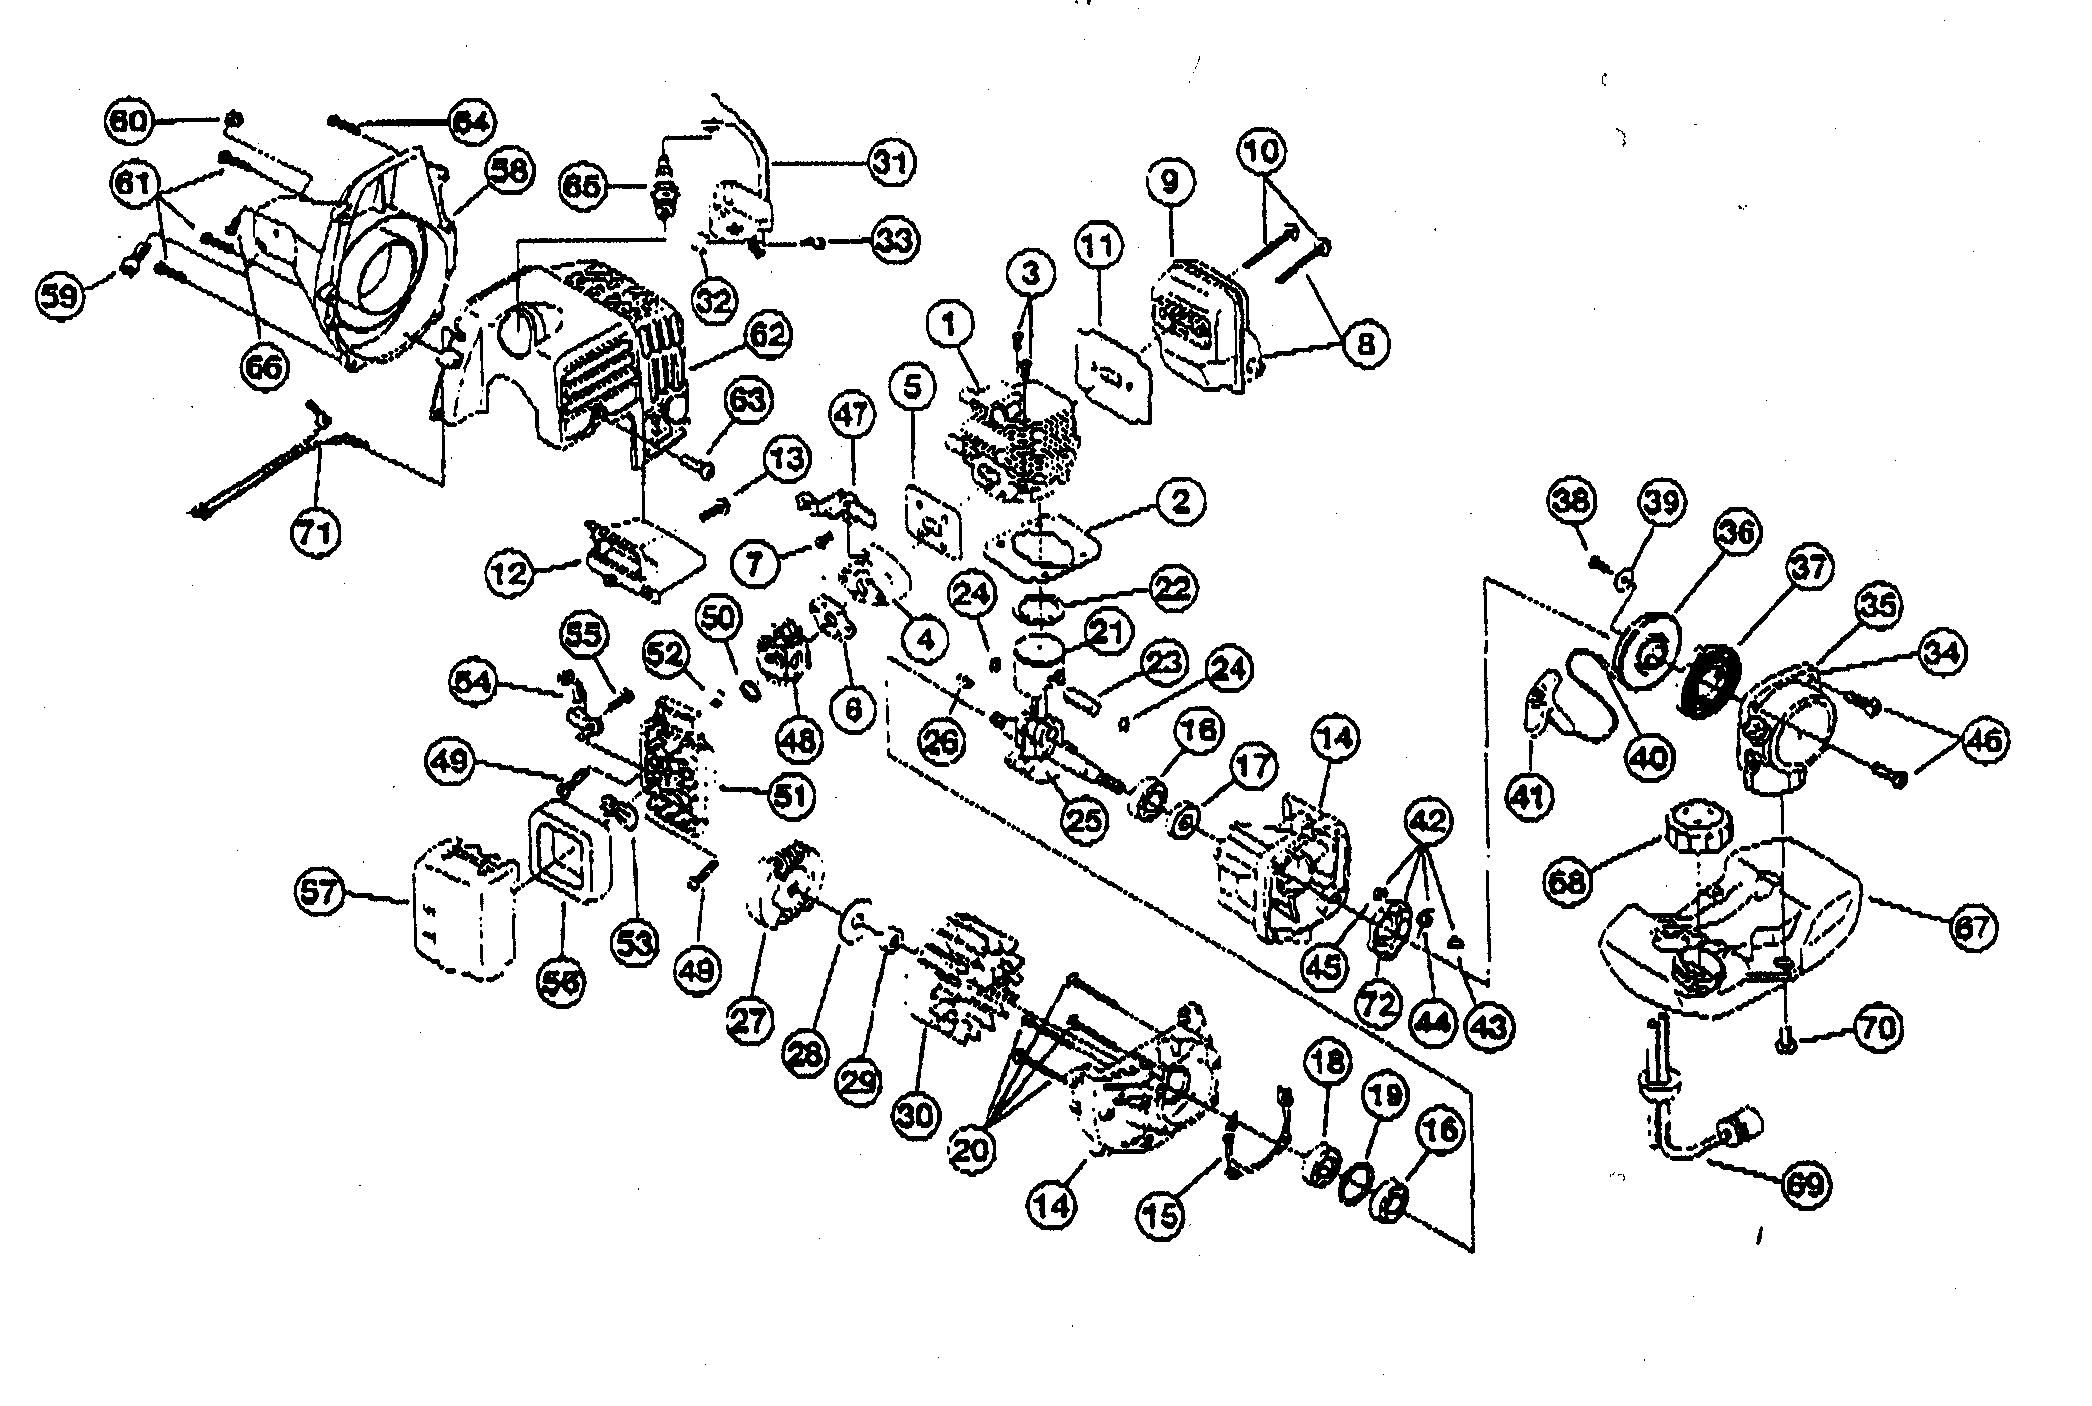 parts manual for sears 31cc ges lawn trimmer